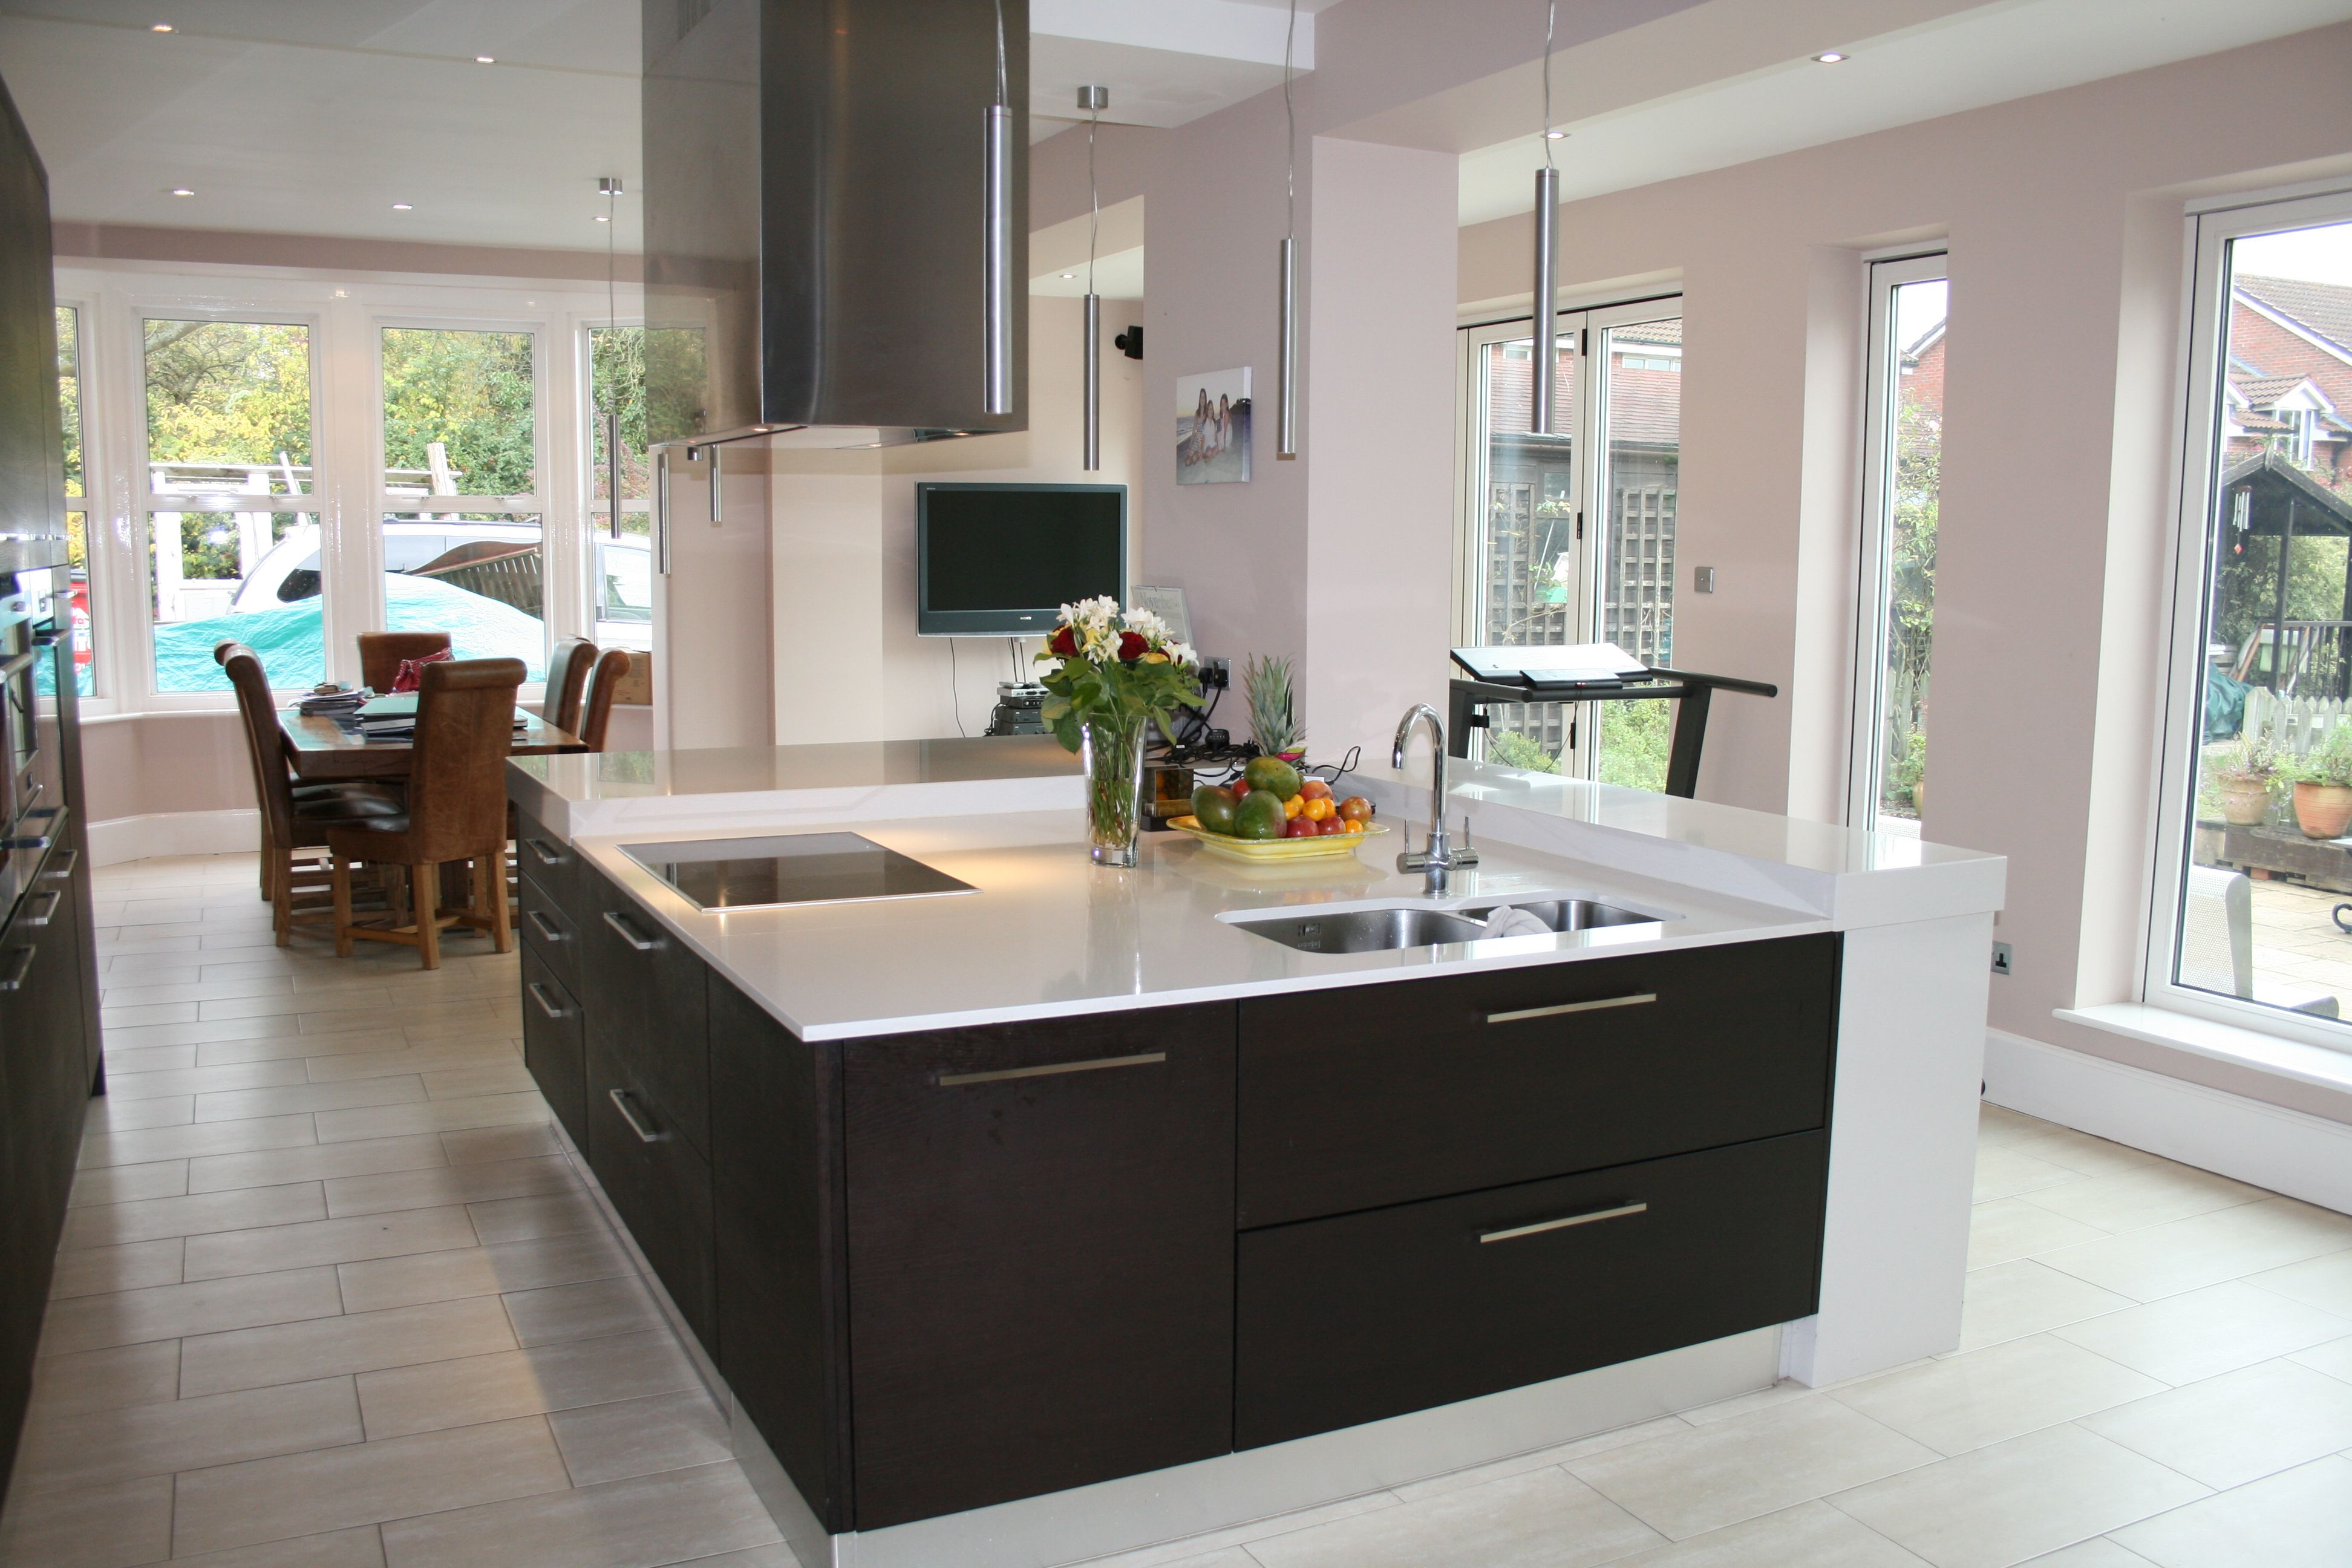 large contemporary square kitchen island built to incorporate a